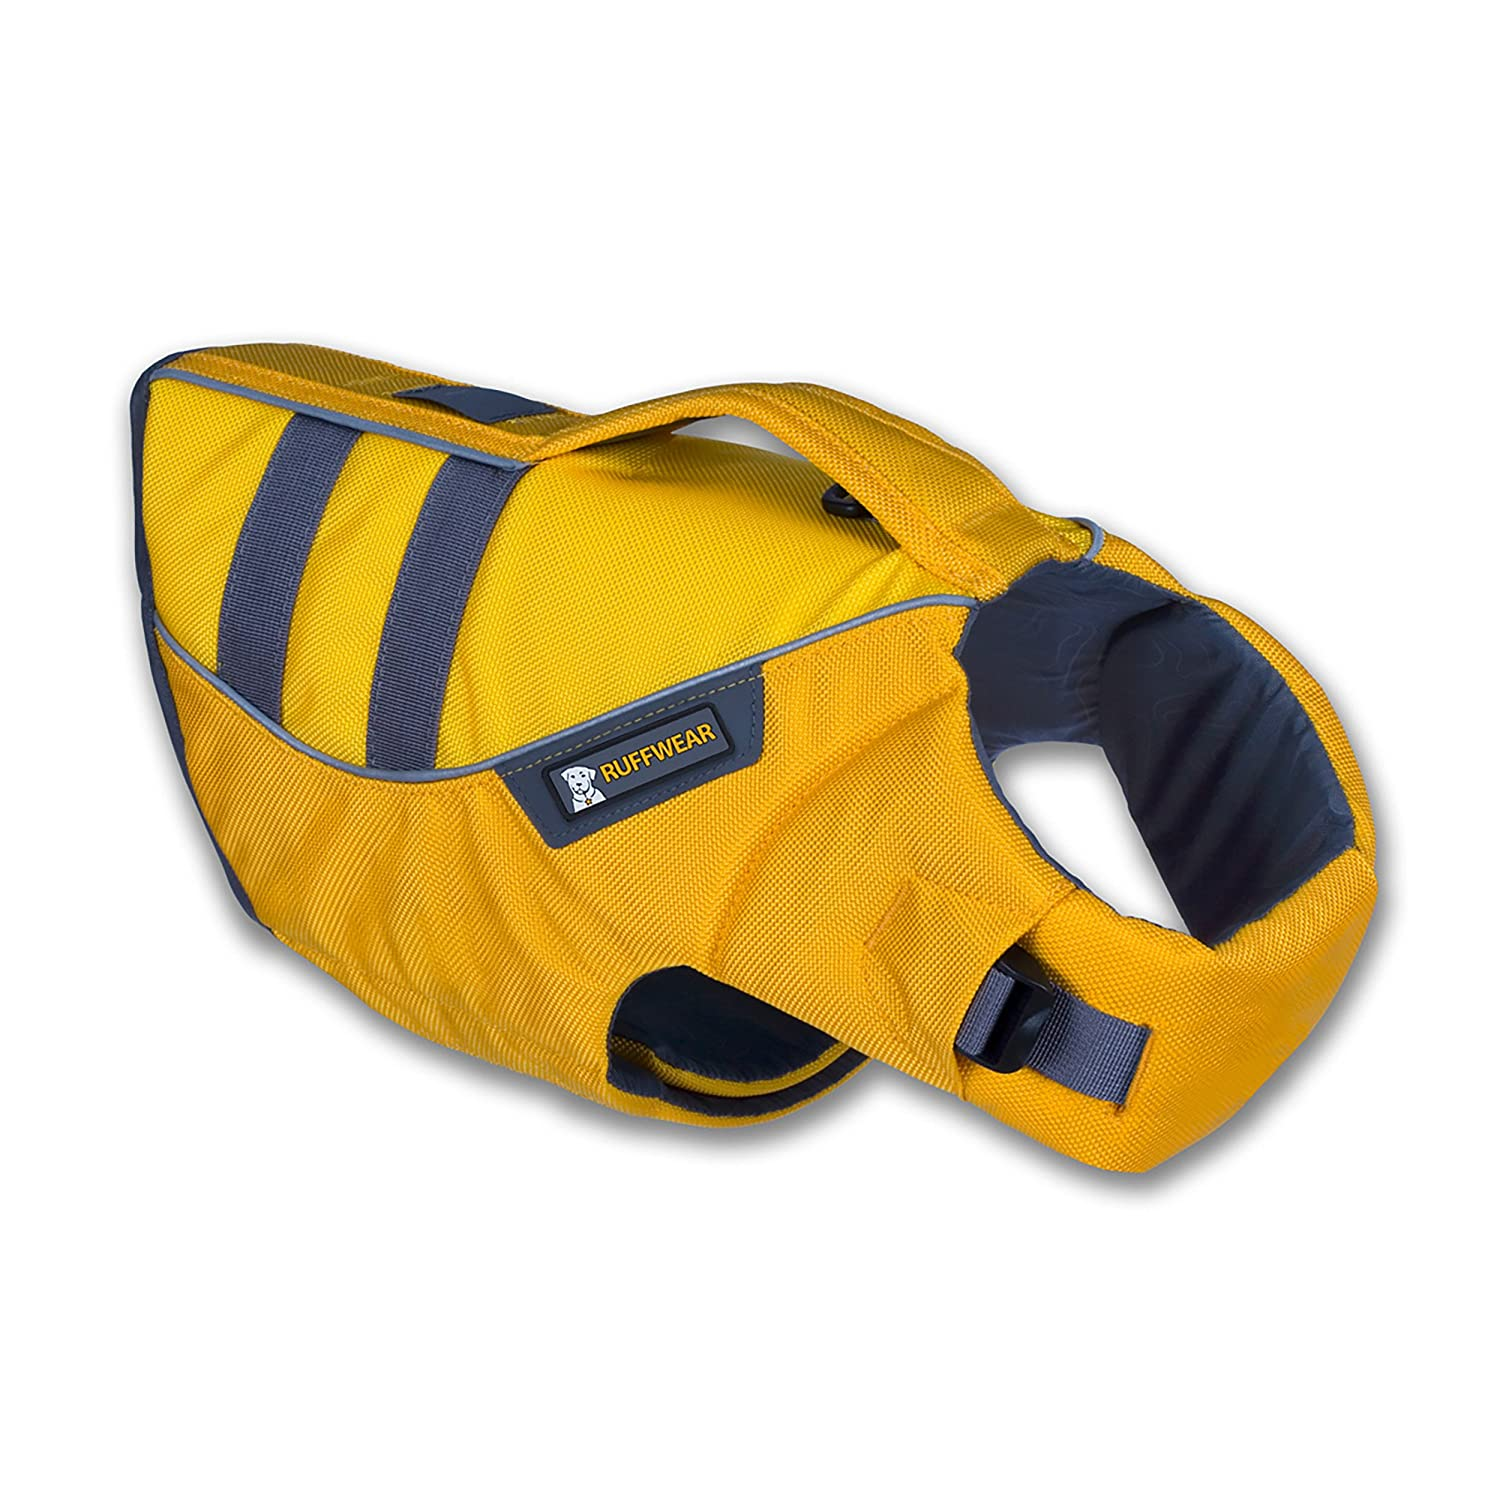 Ruffwear - K9 Float Coat, color dandelion, talla L: Amazon.es: Productos para mascotas